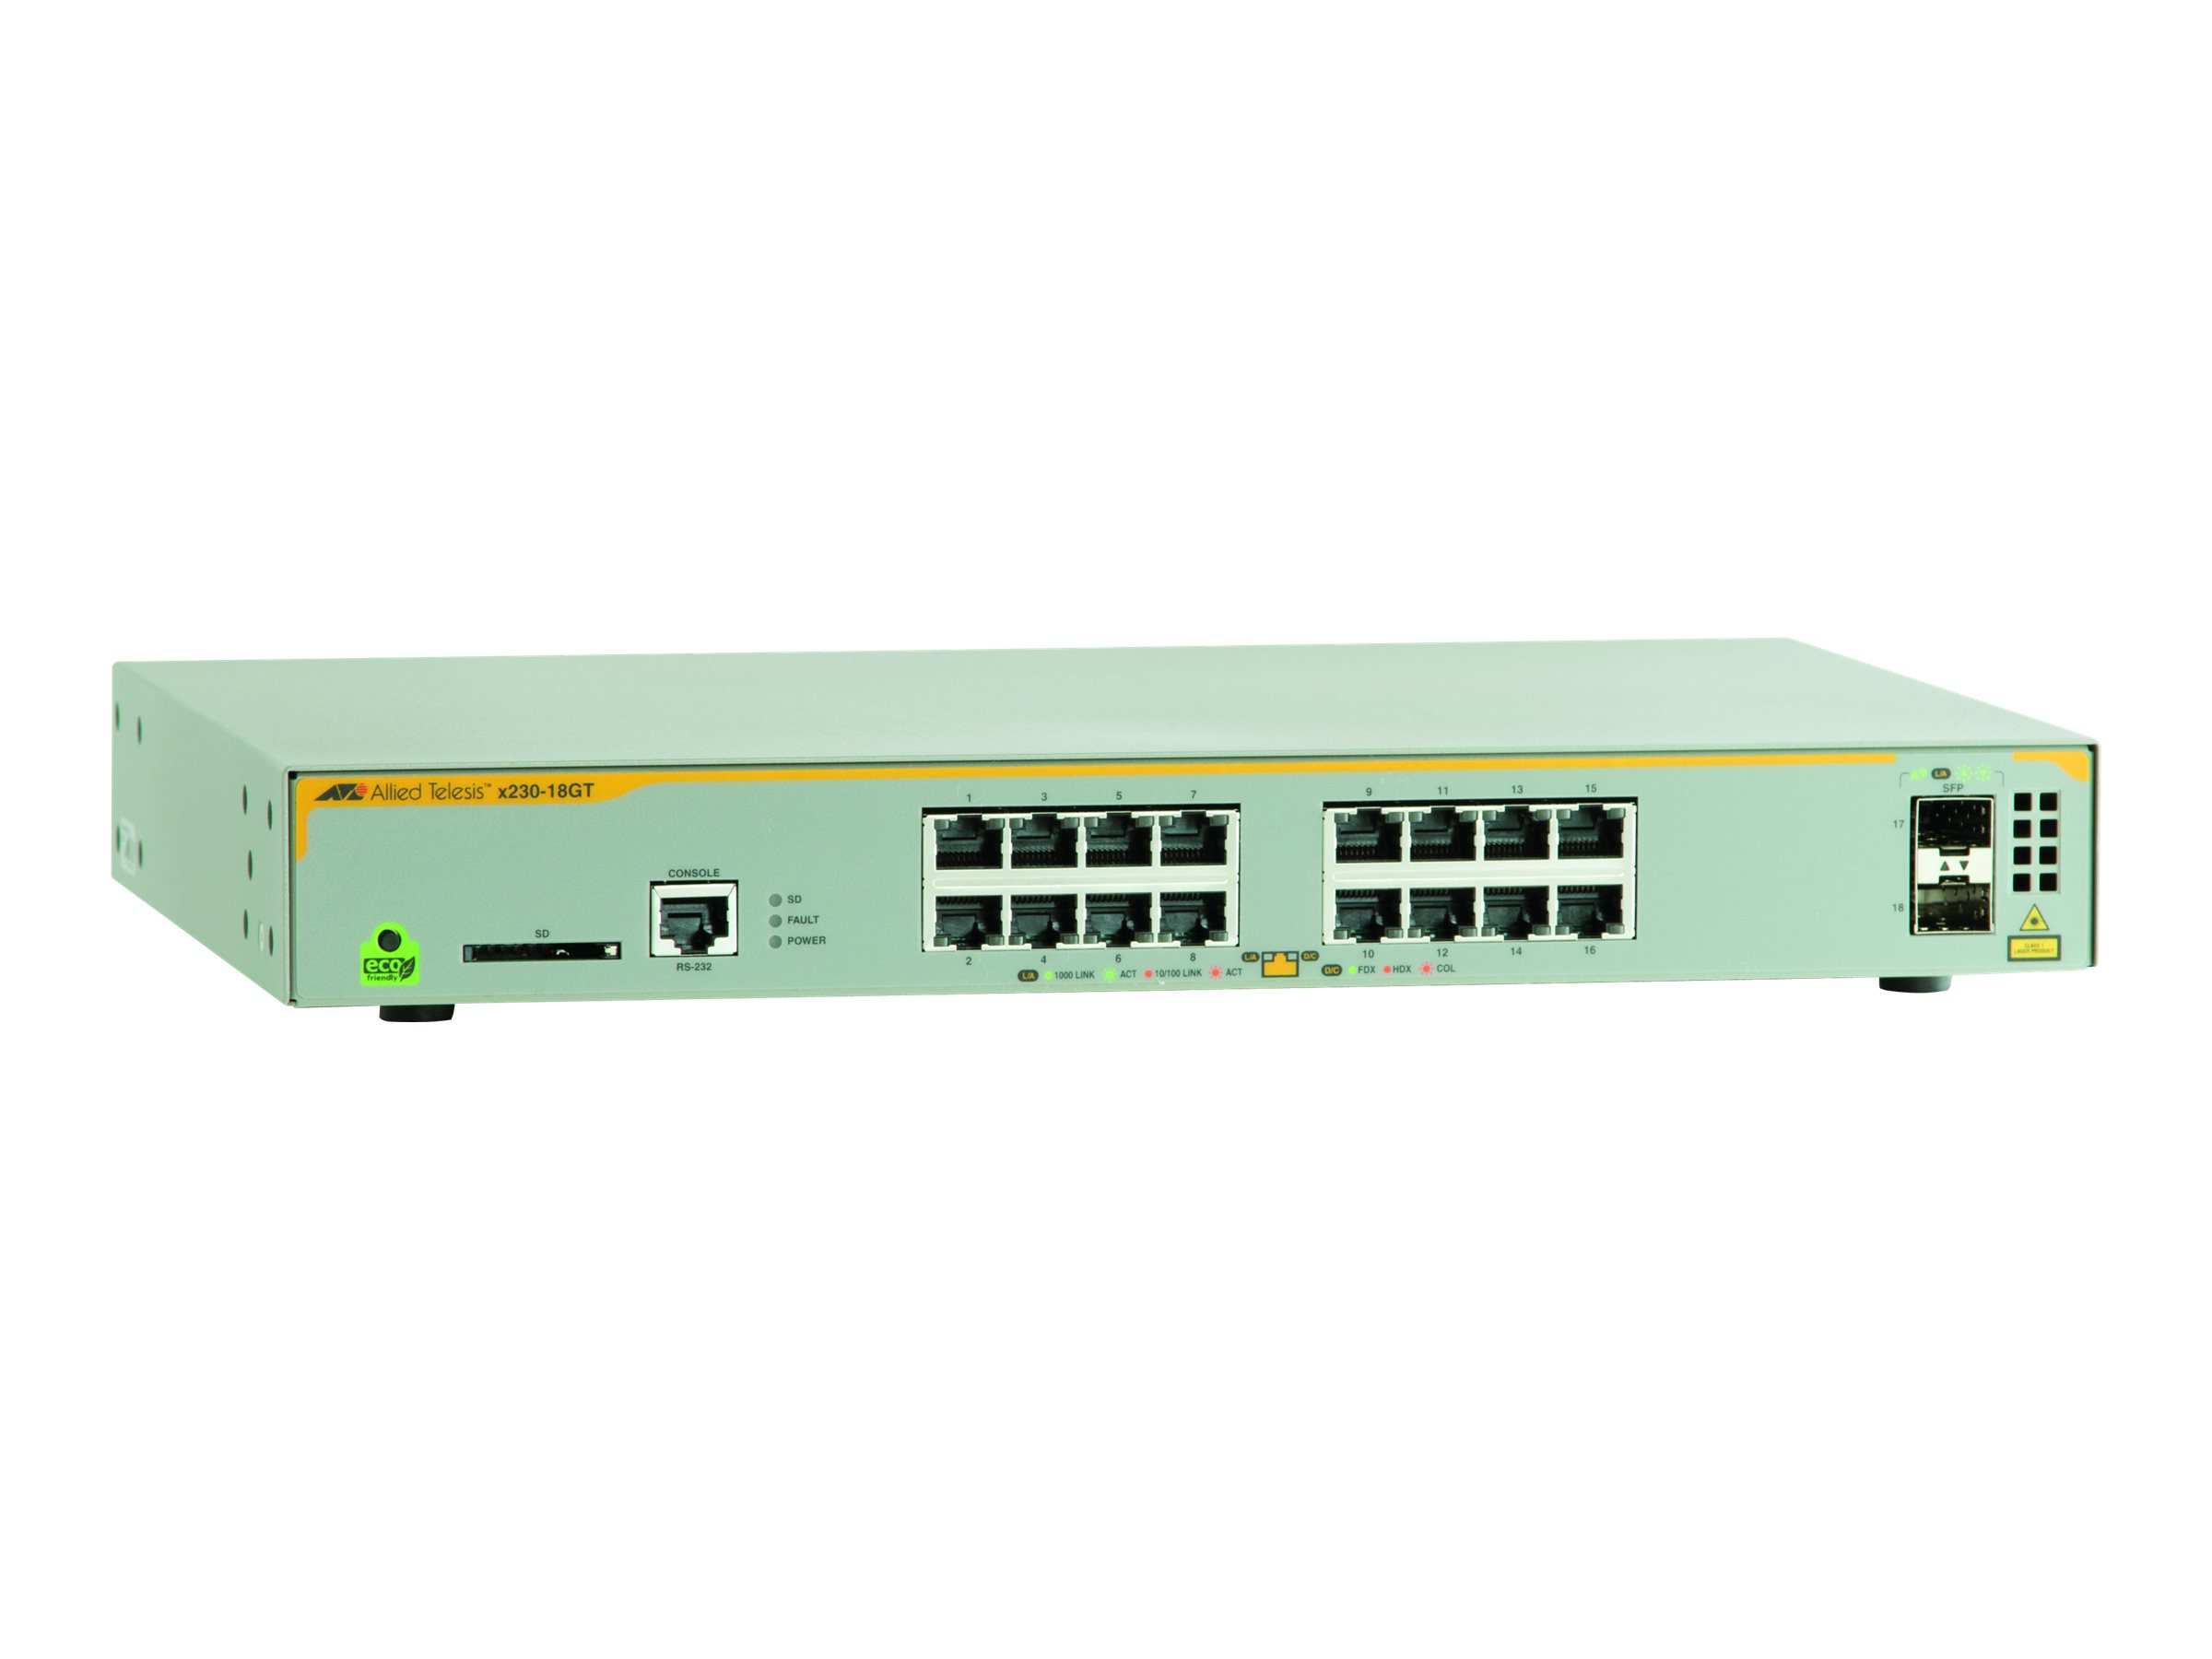 Allied Telesis AT x230-18GT - switch - 16 ports - managed - rack-mountable